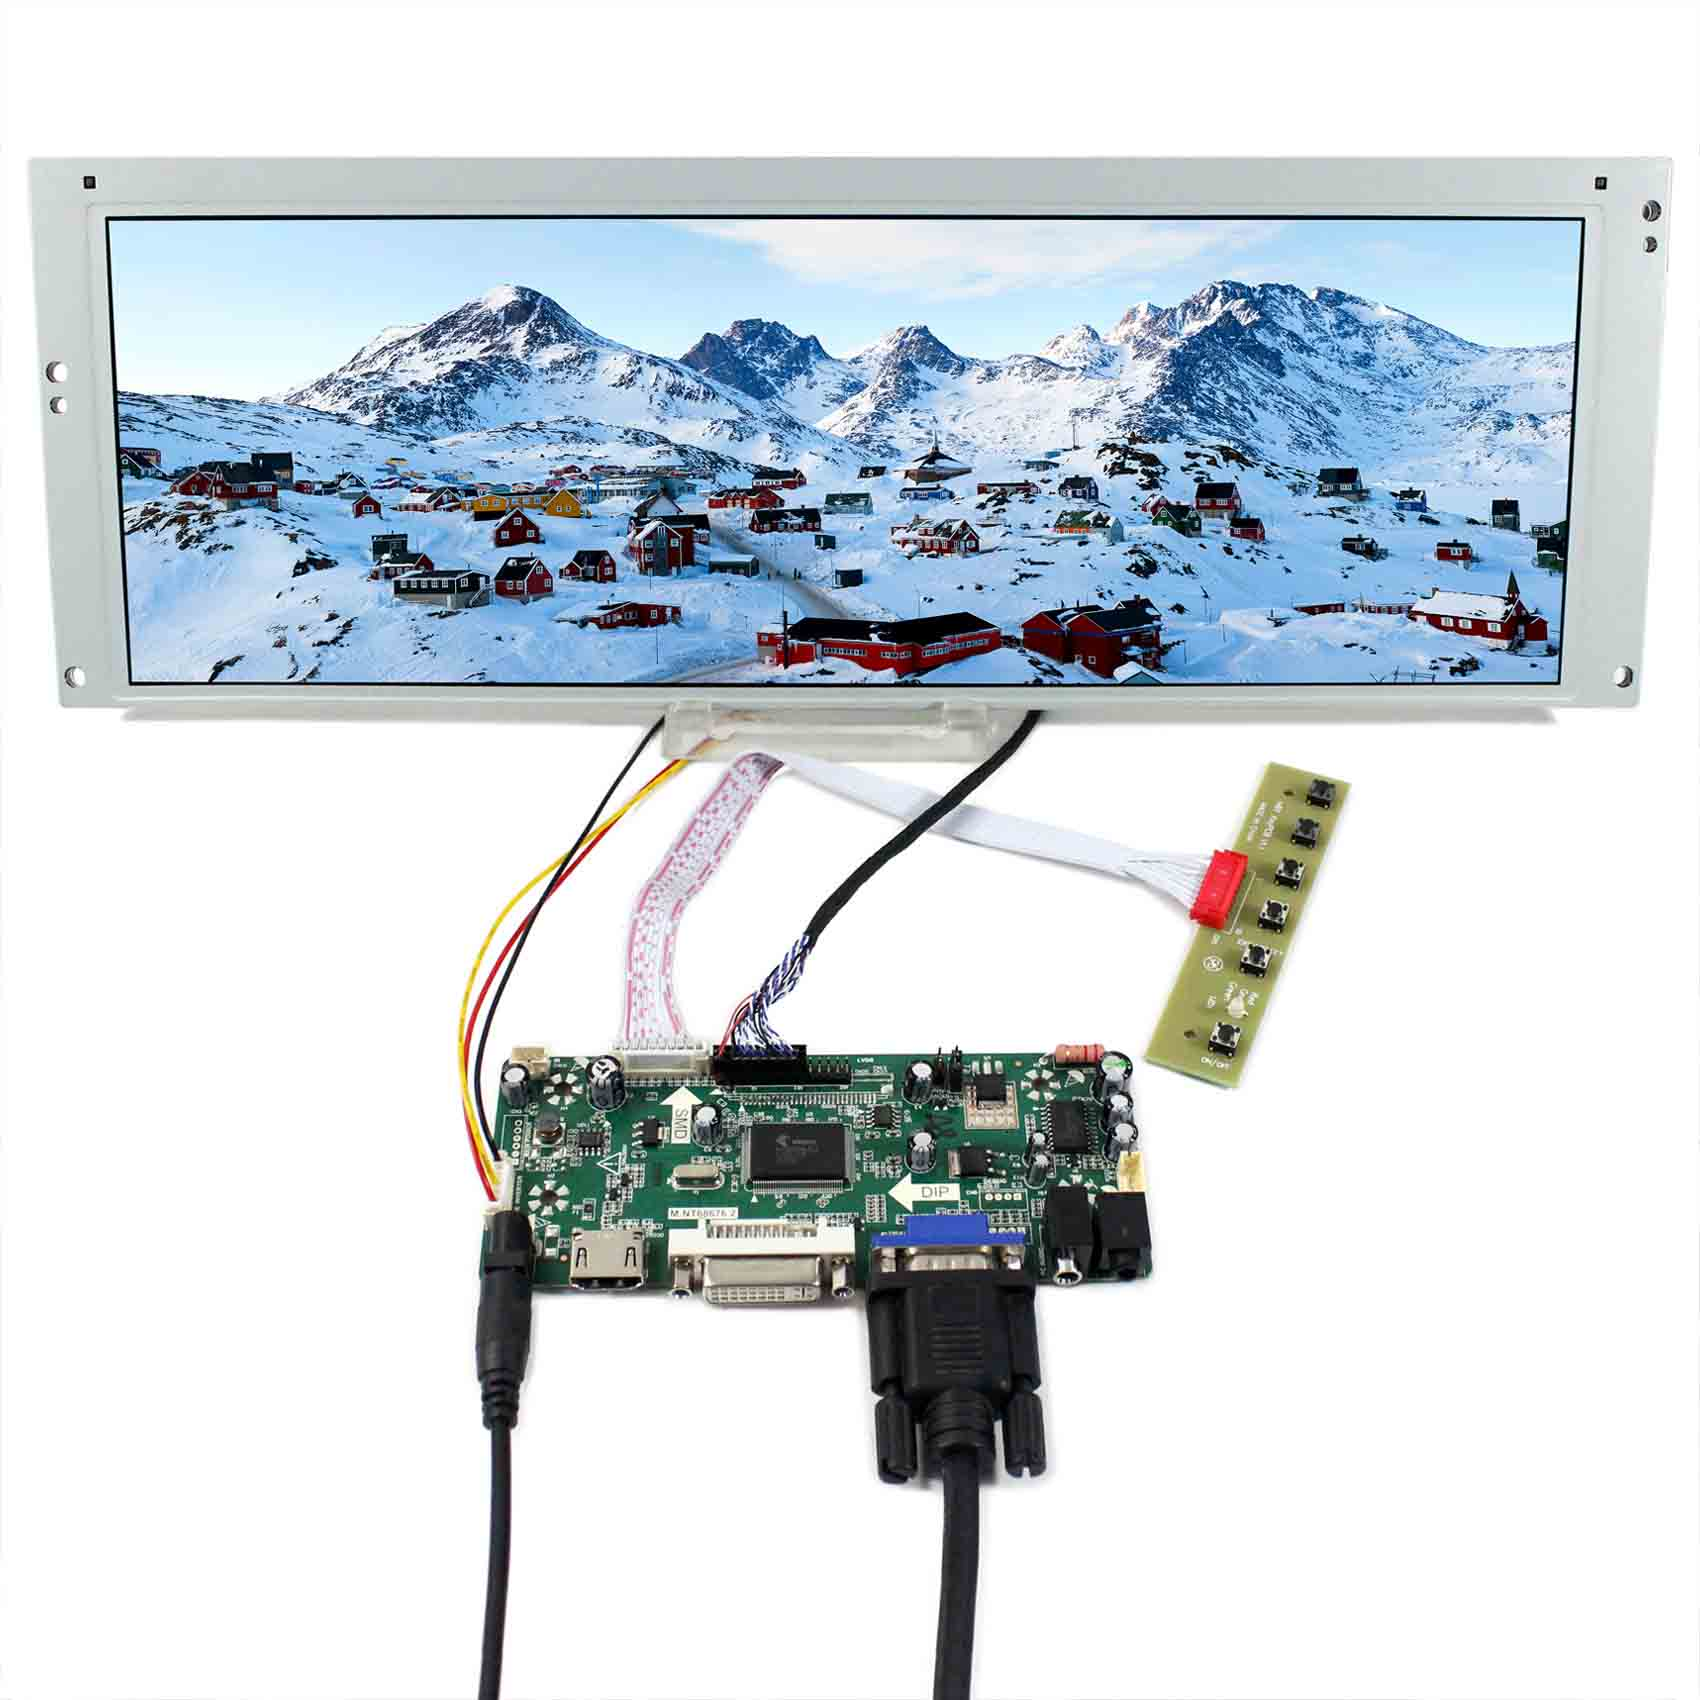 HDMI VGA DVI LCD controller board with 14 9inch 1280x390 LTA149B780F LCD screen